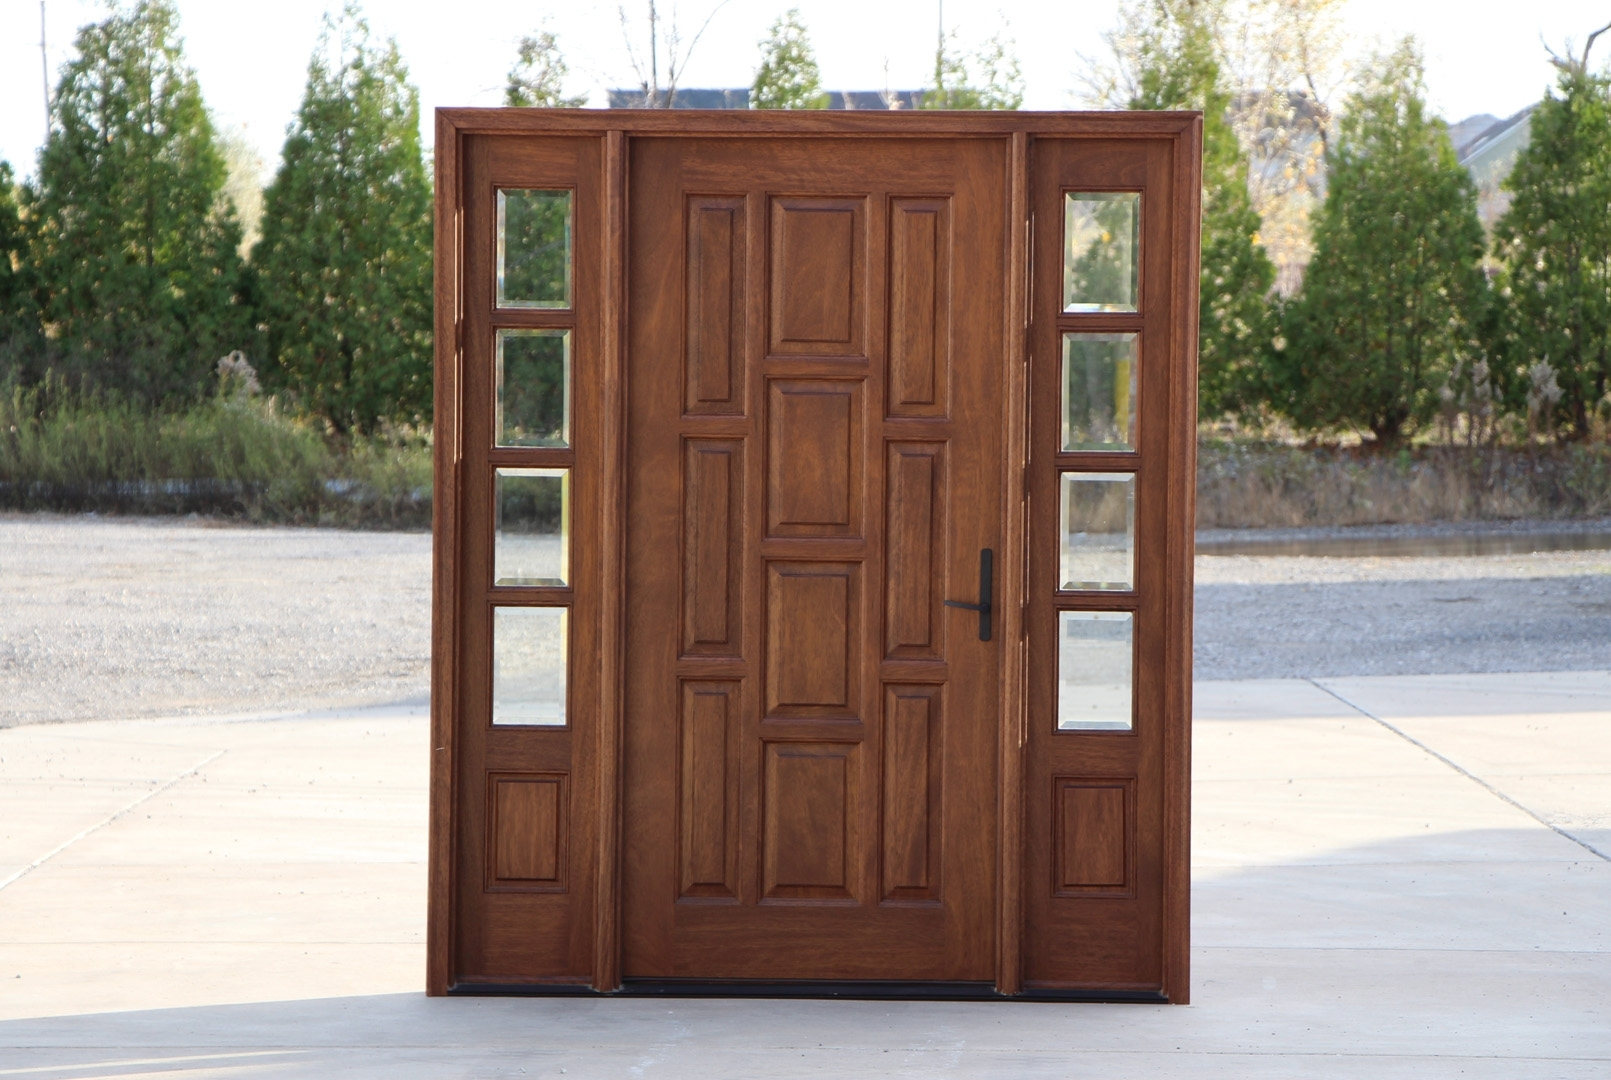 Picture of: Wood Entry Doors With Sidelights